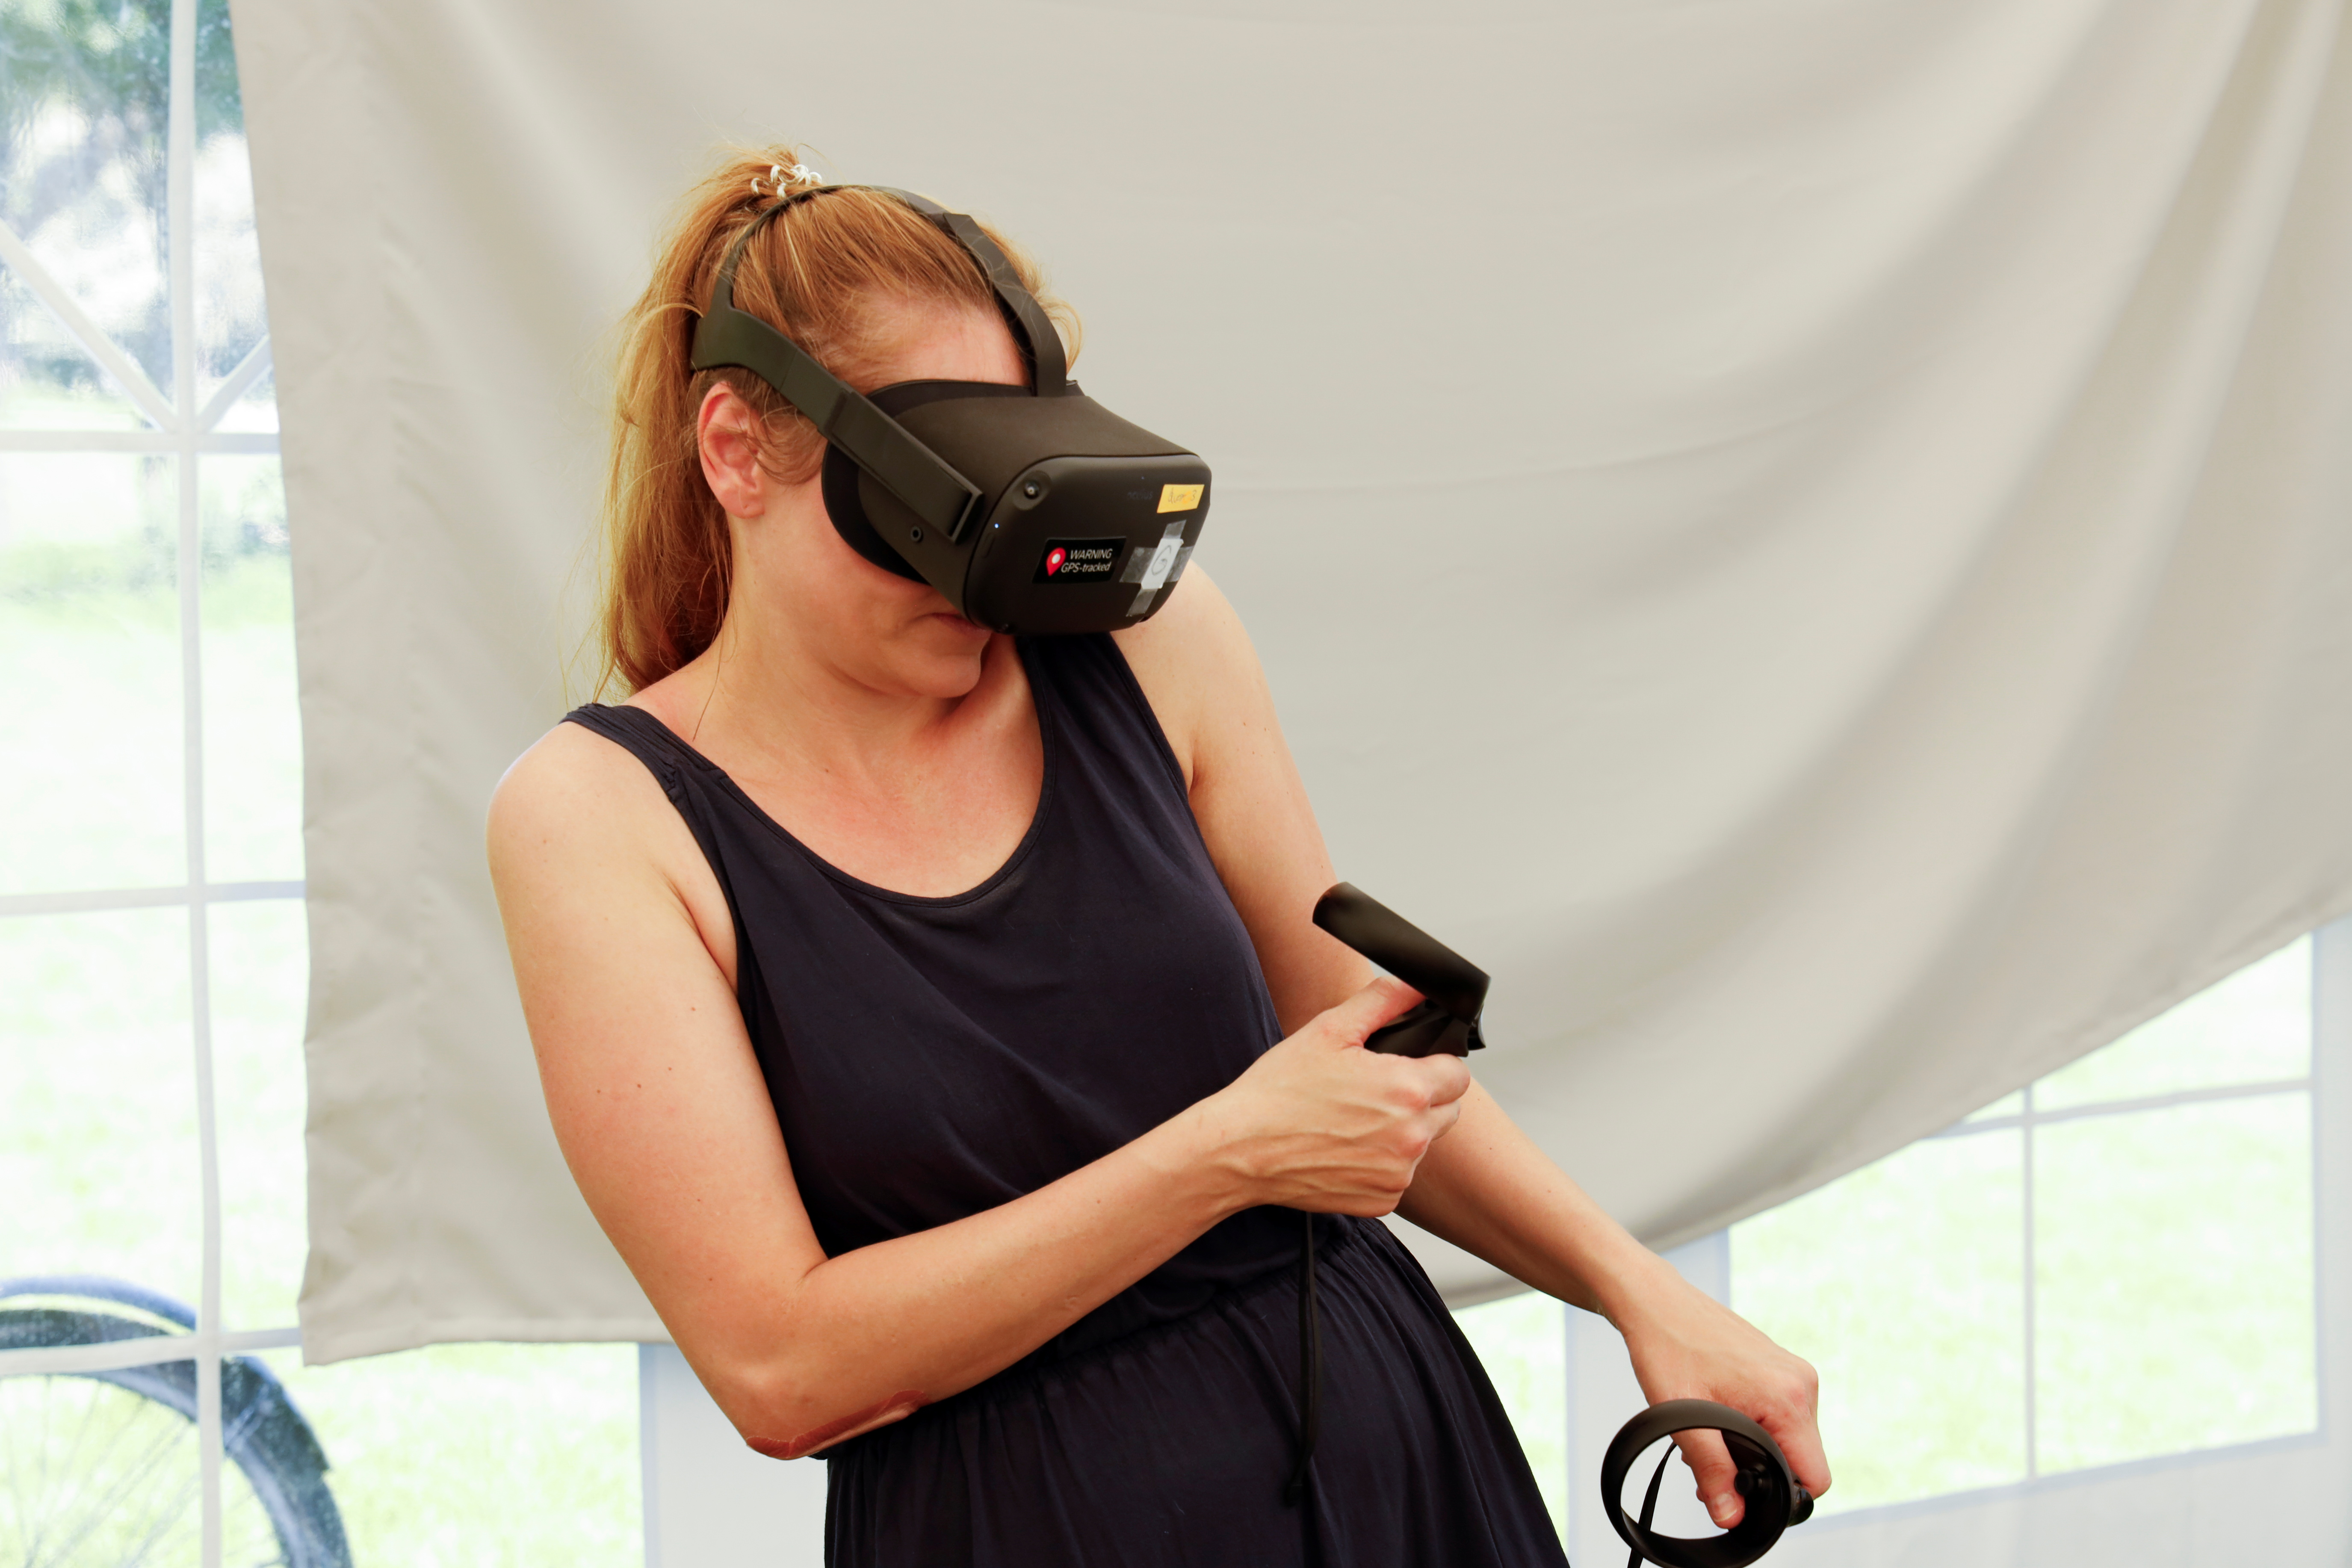 A participant takes part in an experiment, where researchers try to use virtual reality goggles to teach people about how virus infections spread, conducted in a park, amid the coronavirus disease (COVID-19) pandemic, in Copenhagen, Denmark, June 6, 2021. Picture taken June 6, 2021. REUTERS/Tim Barsoe